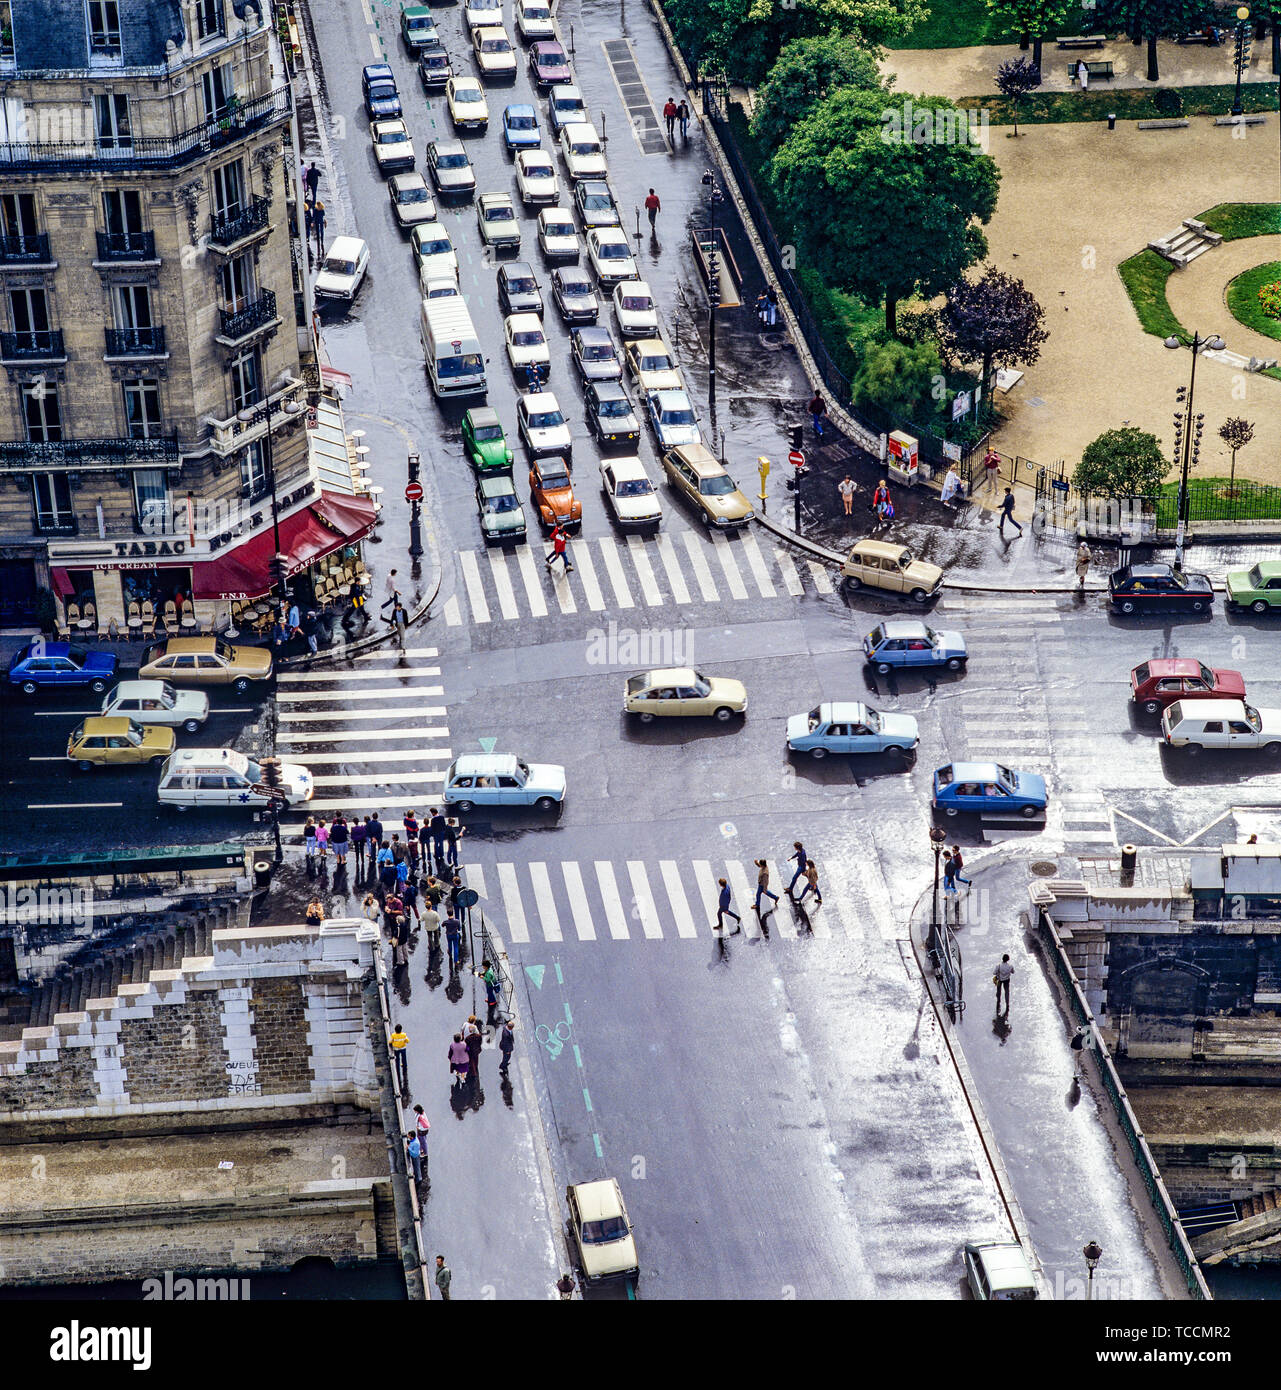 Overview of streets crossing from Notre-Dame de Paris cathedral, pedestrian crossings, cars traffic, Pont Au Double bridge, Paris, France, Europe, - Stock Image